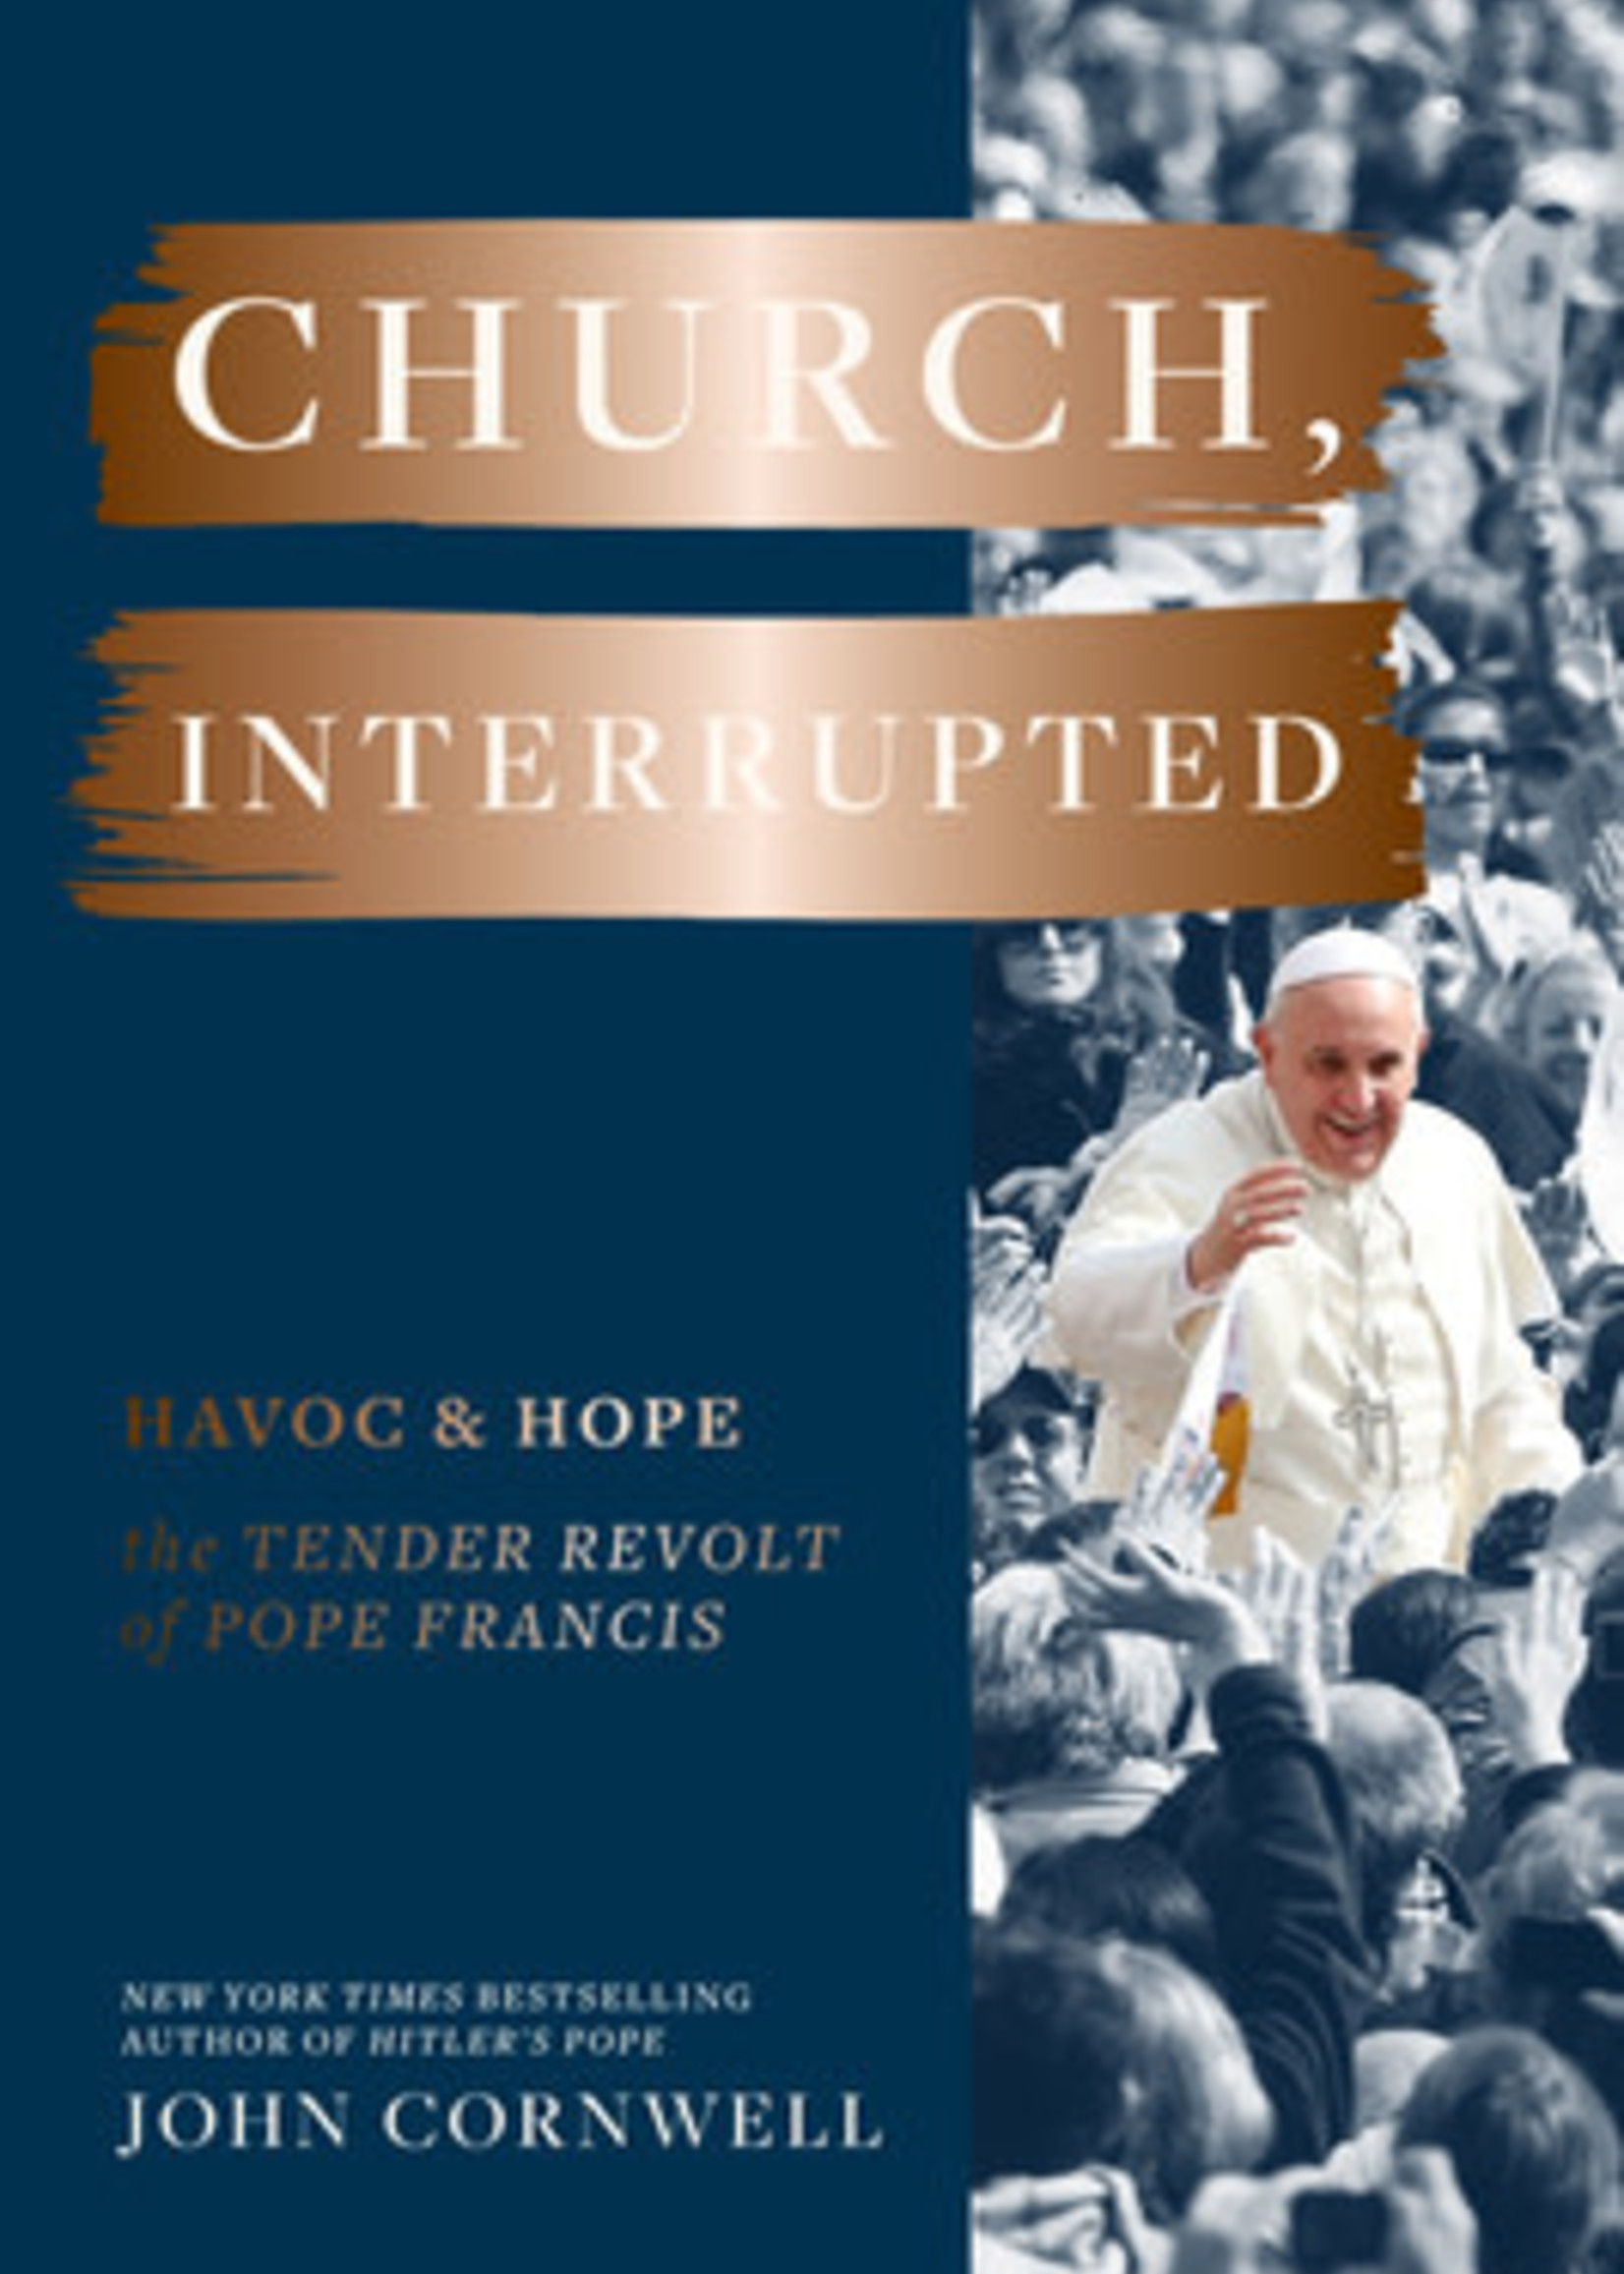 Church, Interrupted: Havoc Hope: The Tender Revolt of Pope Francis by John Cornwell